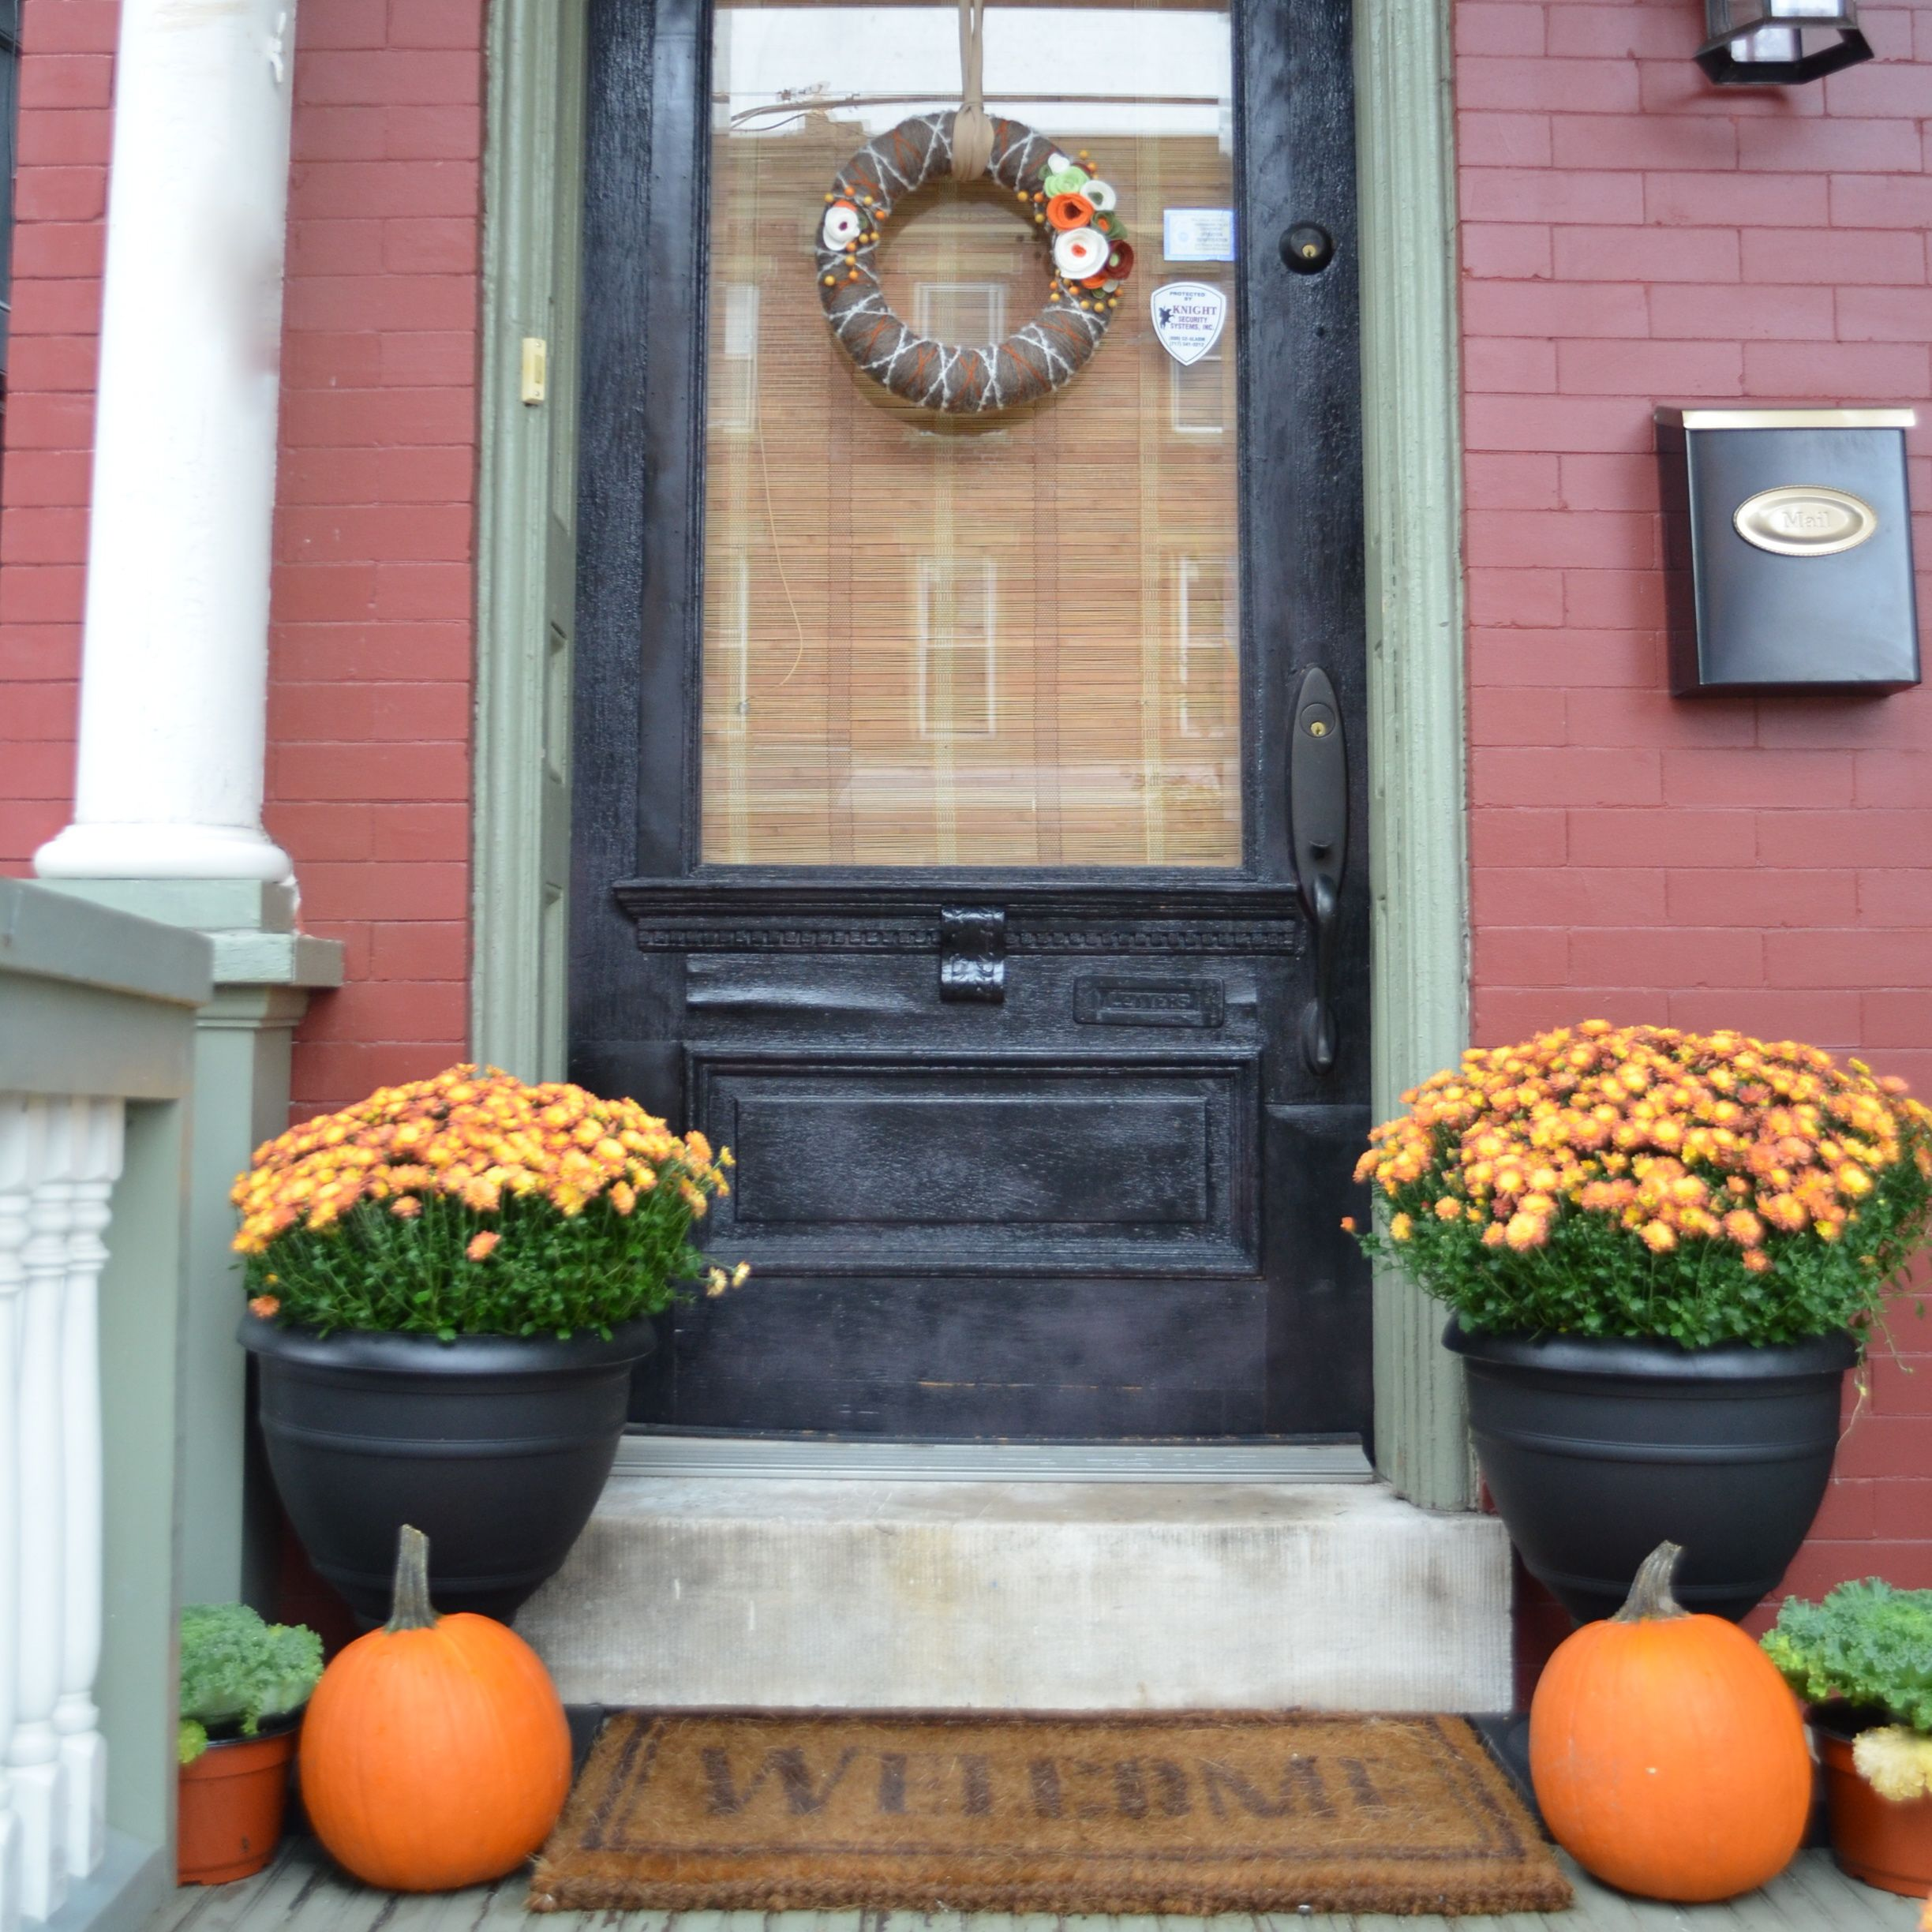 Doors pleasant fall decorating ideas for outside pinterest autumn - 22 Fall Front Porch Ideas Veranda Front Porches Porch And Fall